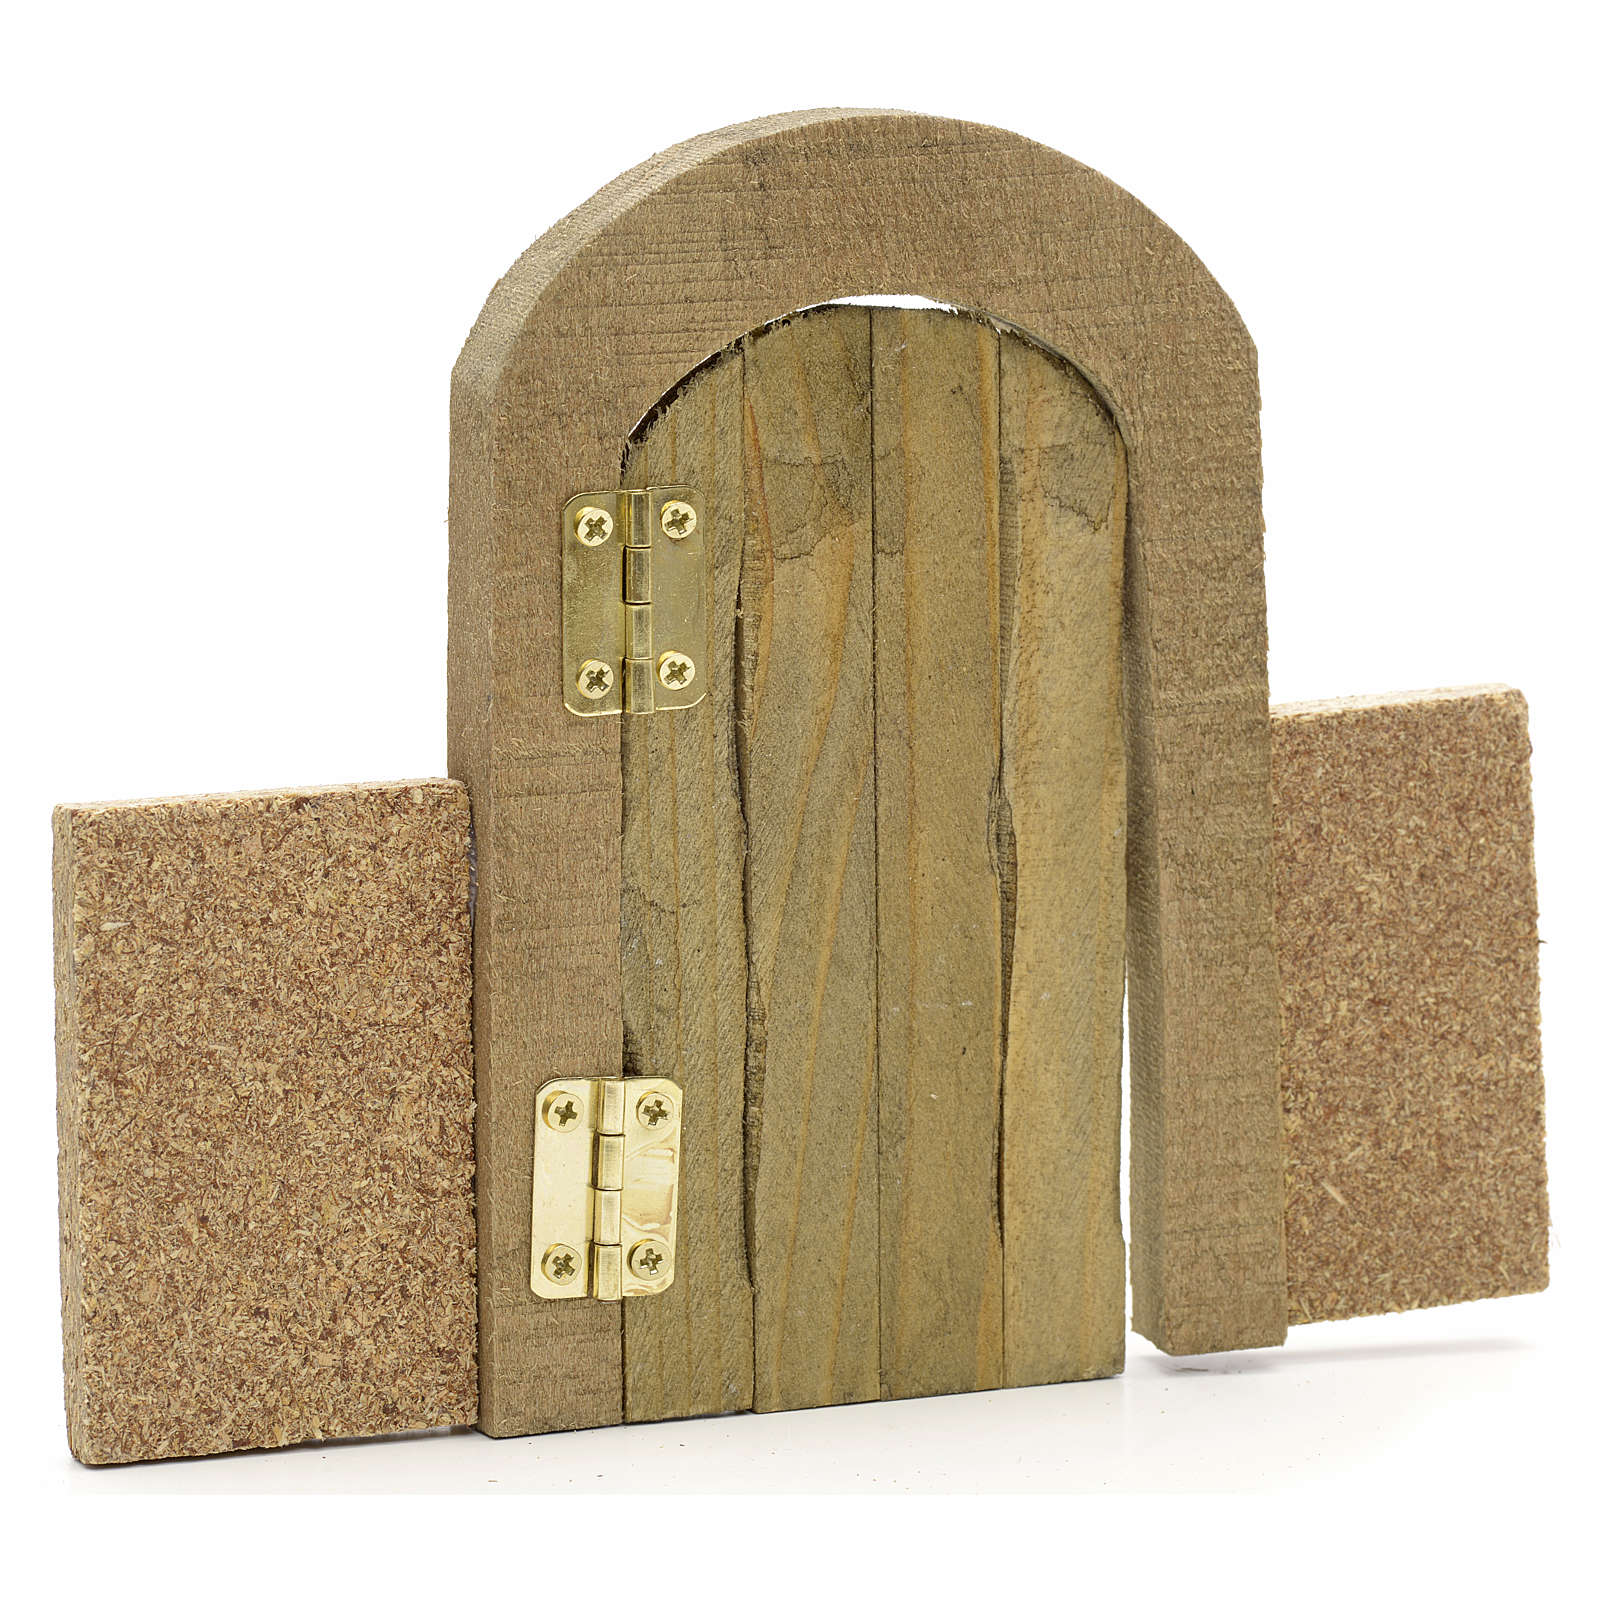 Nativity set accessory, arch gate with wall 4